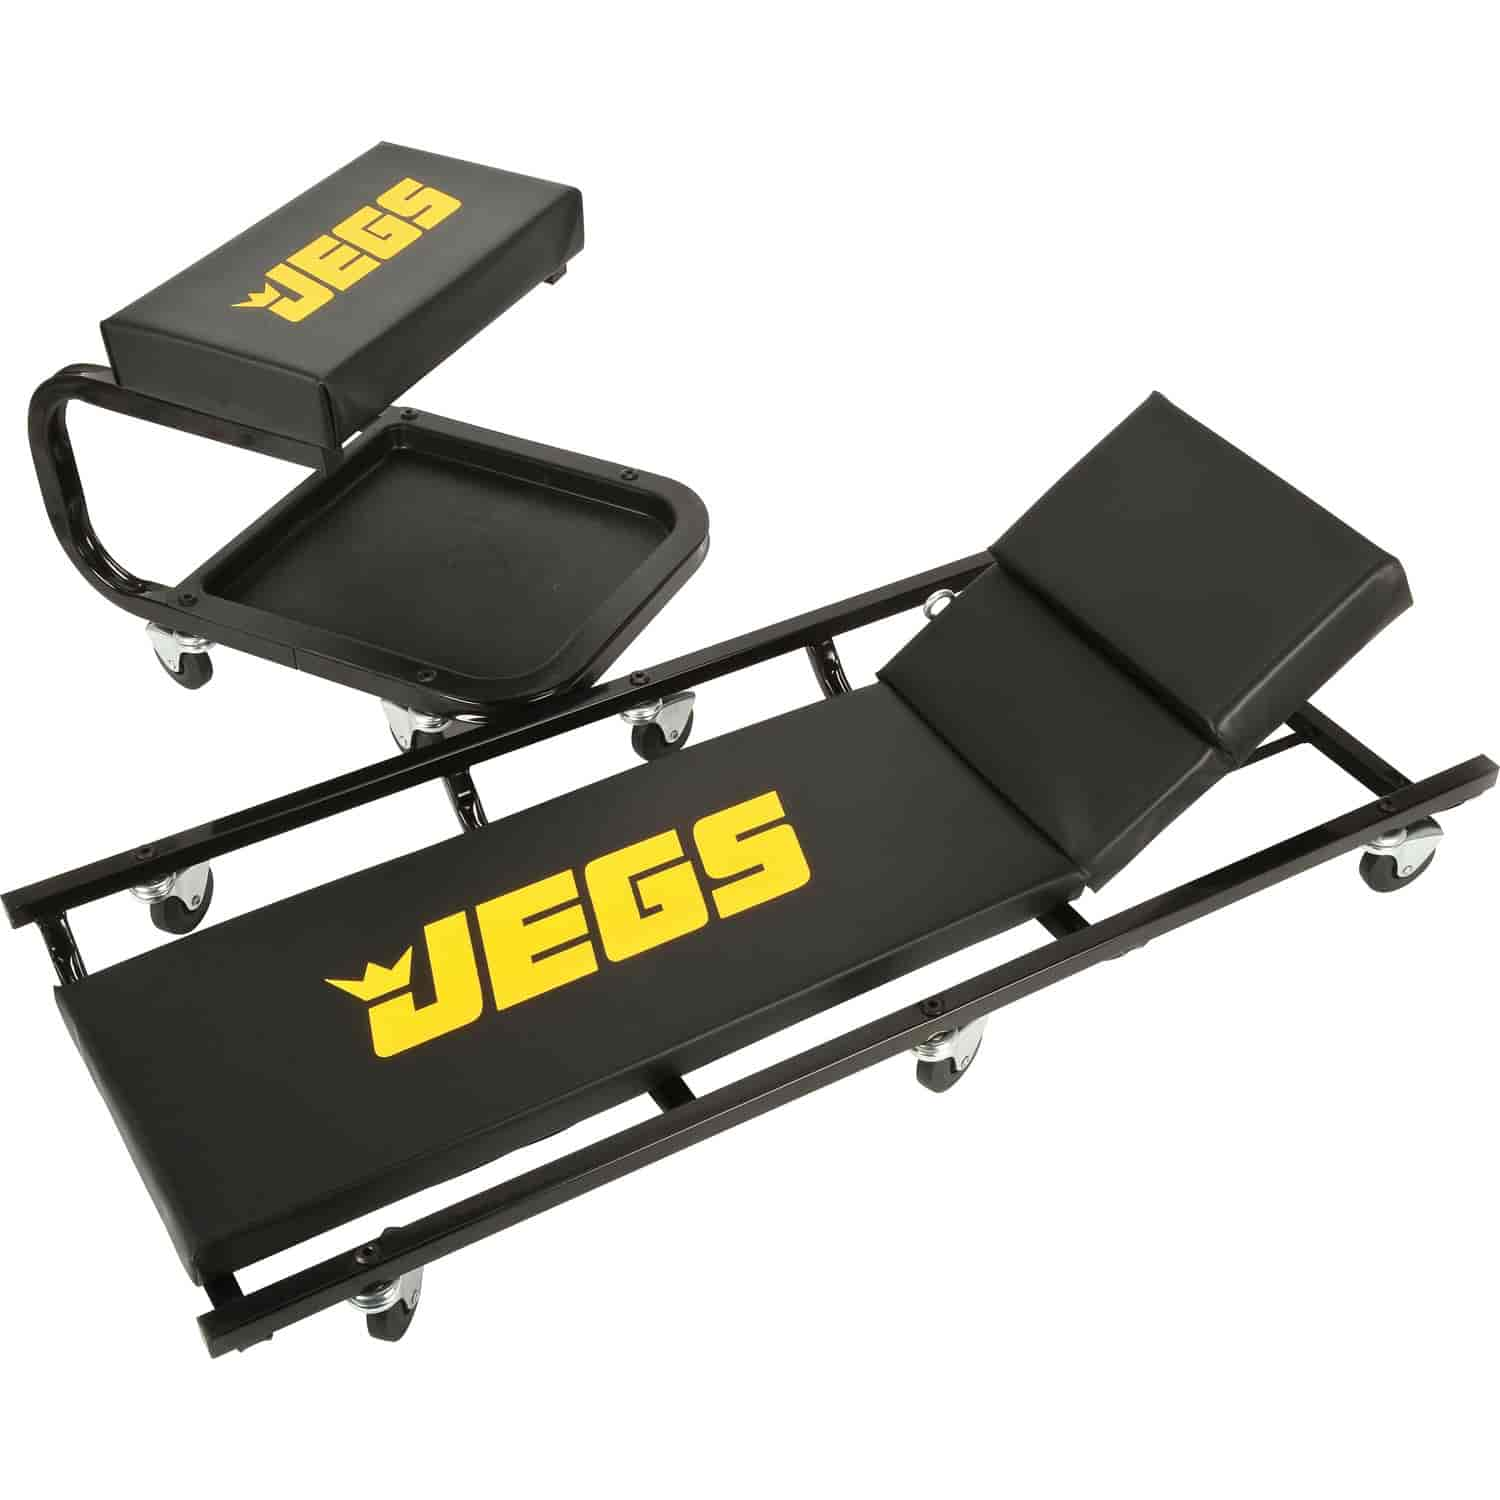 JEGS Performance Products 80069 - JEGS Creeper and Seat Set